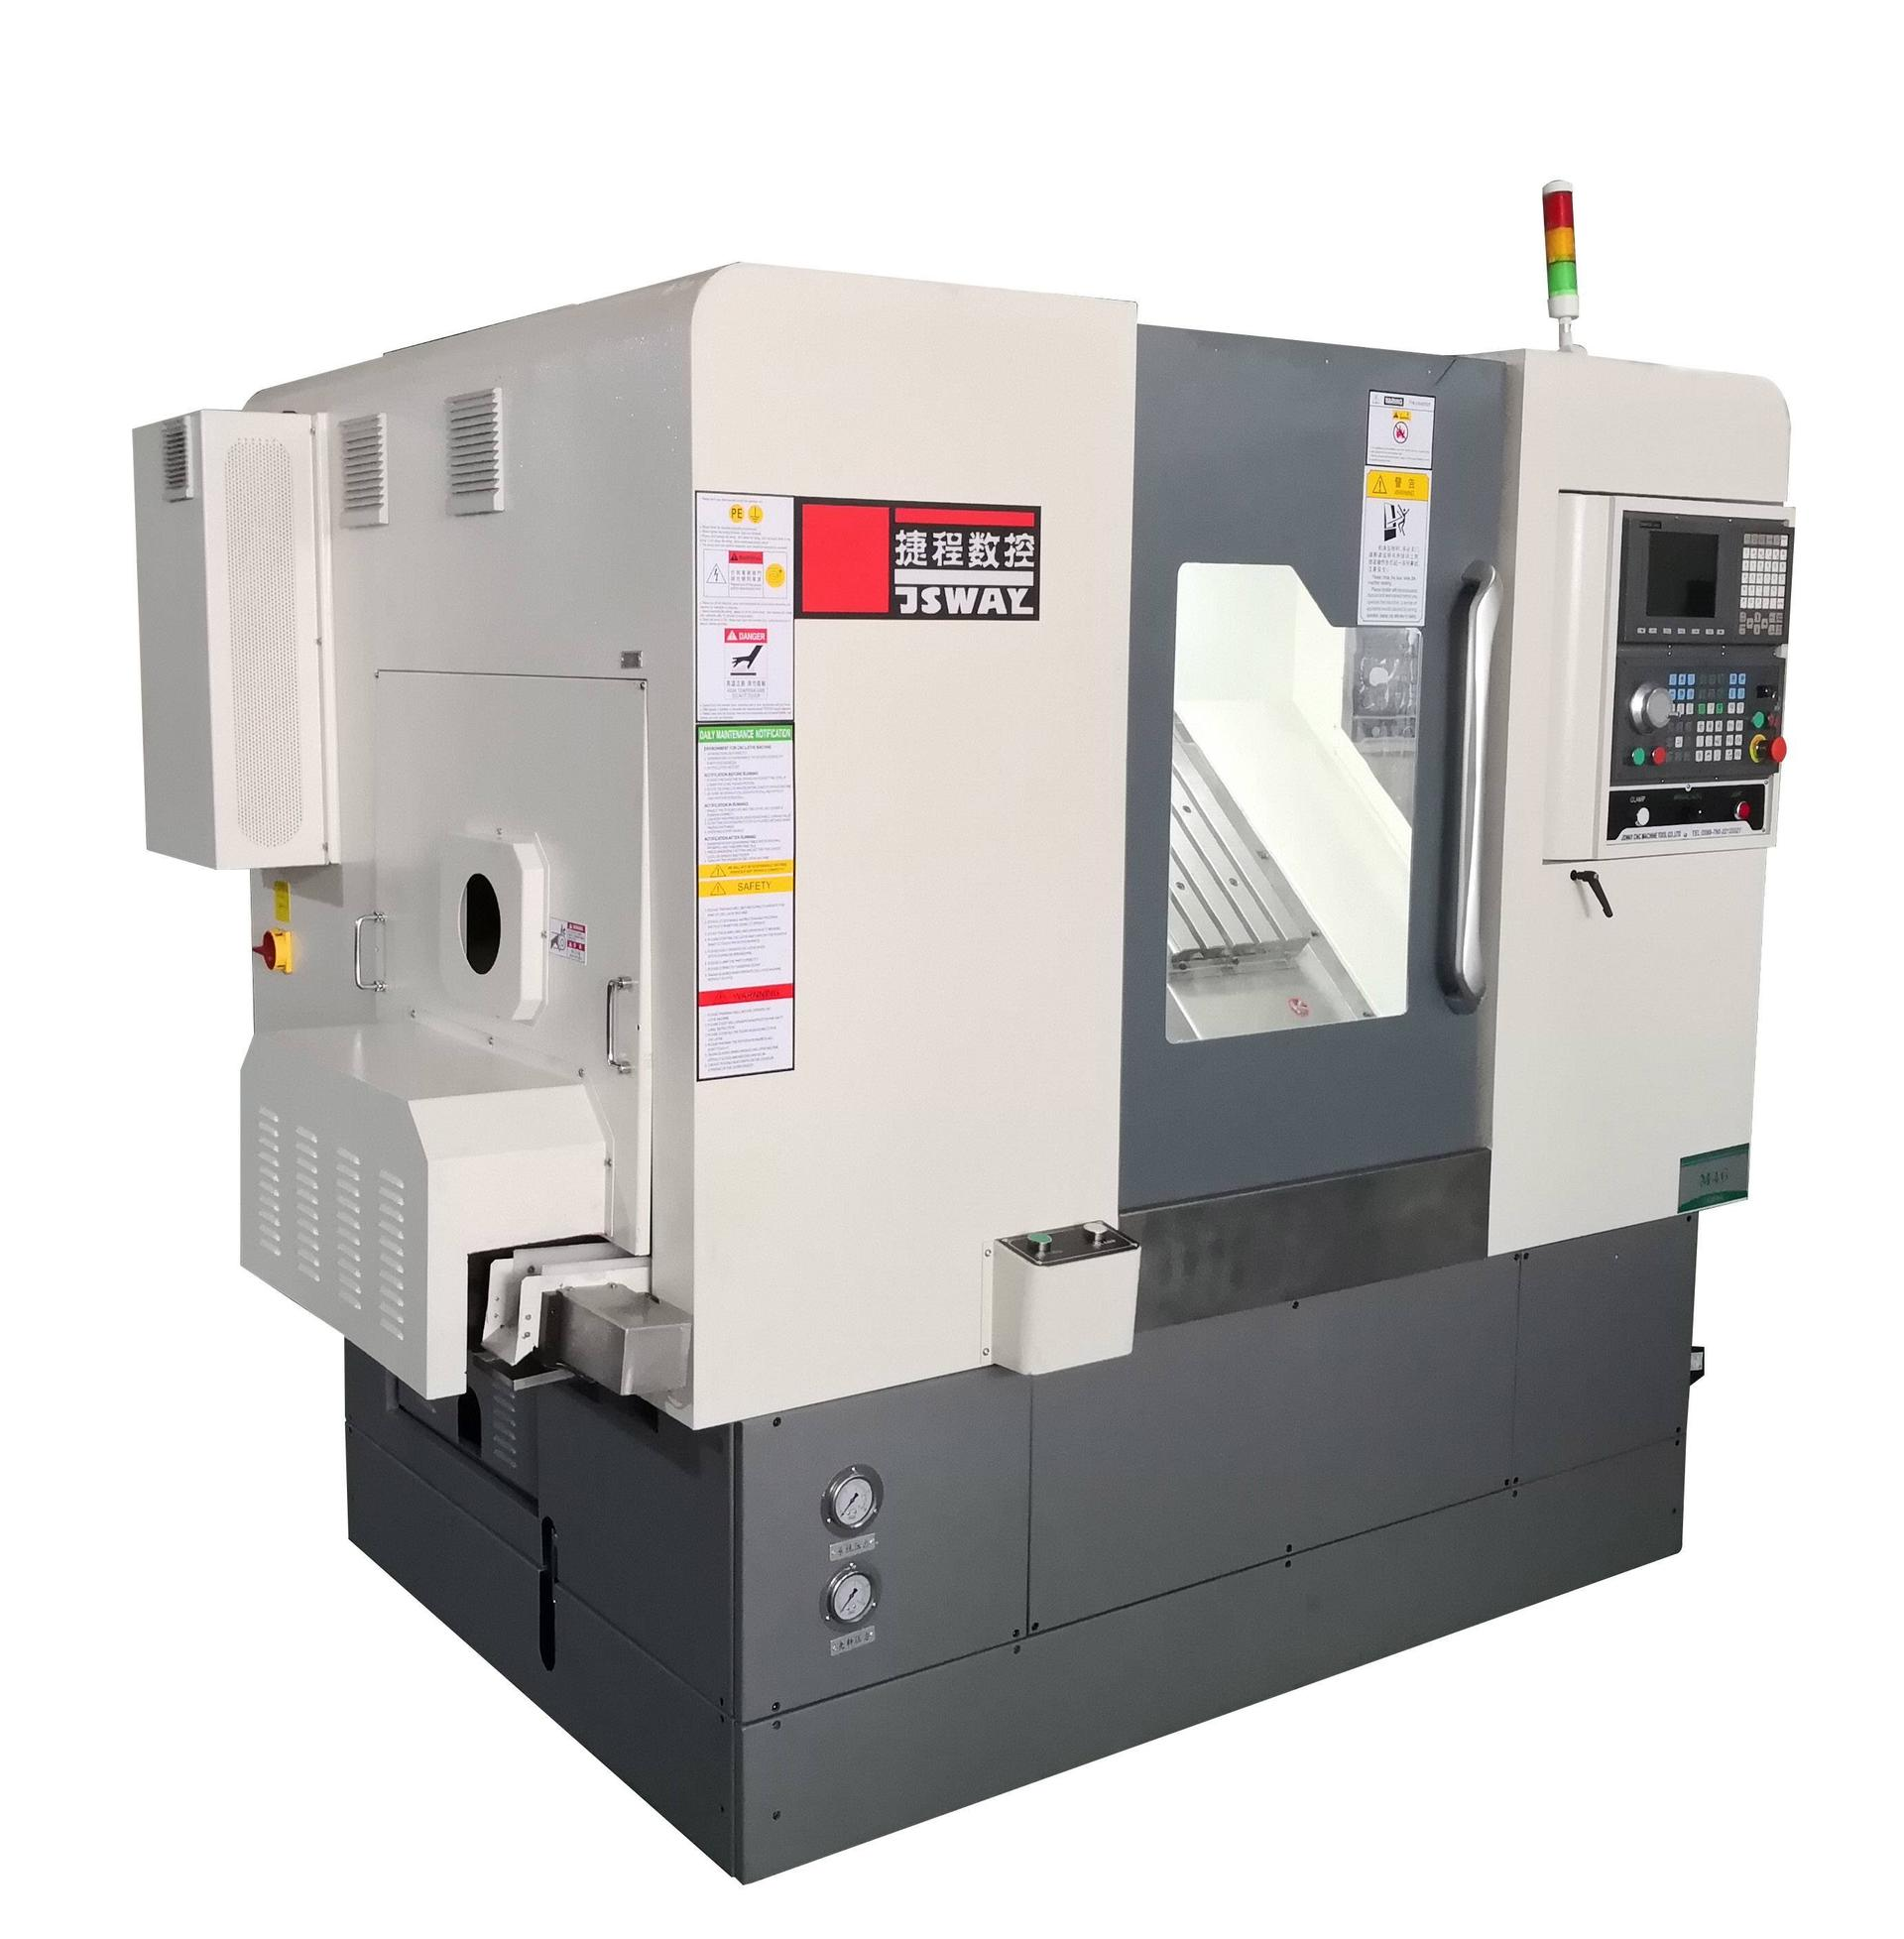 2020 New design 4 Axis Slant Bed turning and milling combine lathe machine  M46X